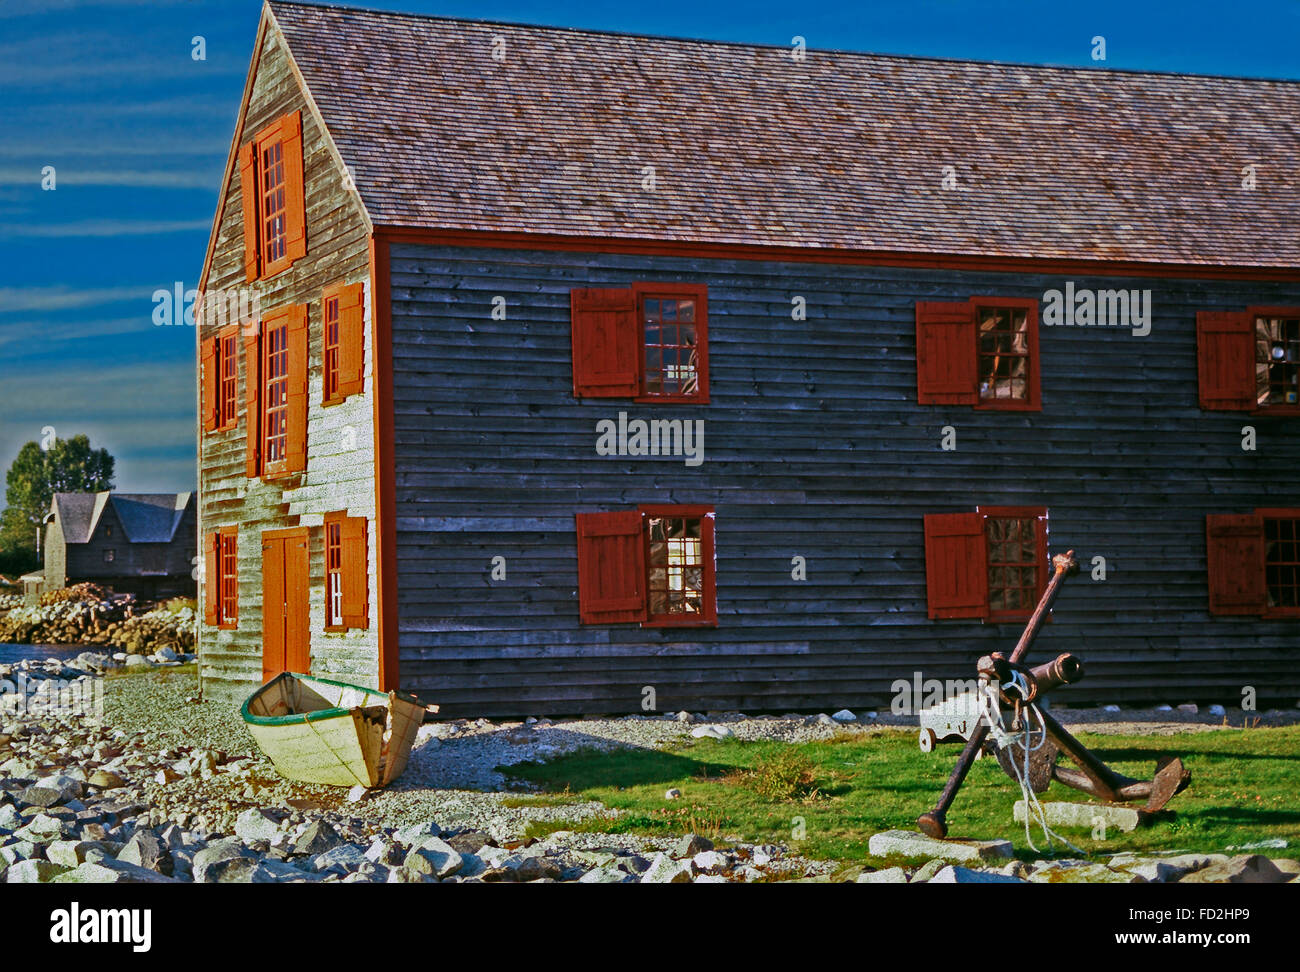 J.C.Williams Dory Shop on Historical Dock Street,Shelburne,Nova Scotia - Stock Image